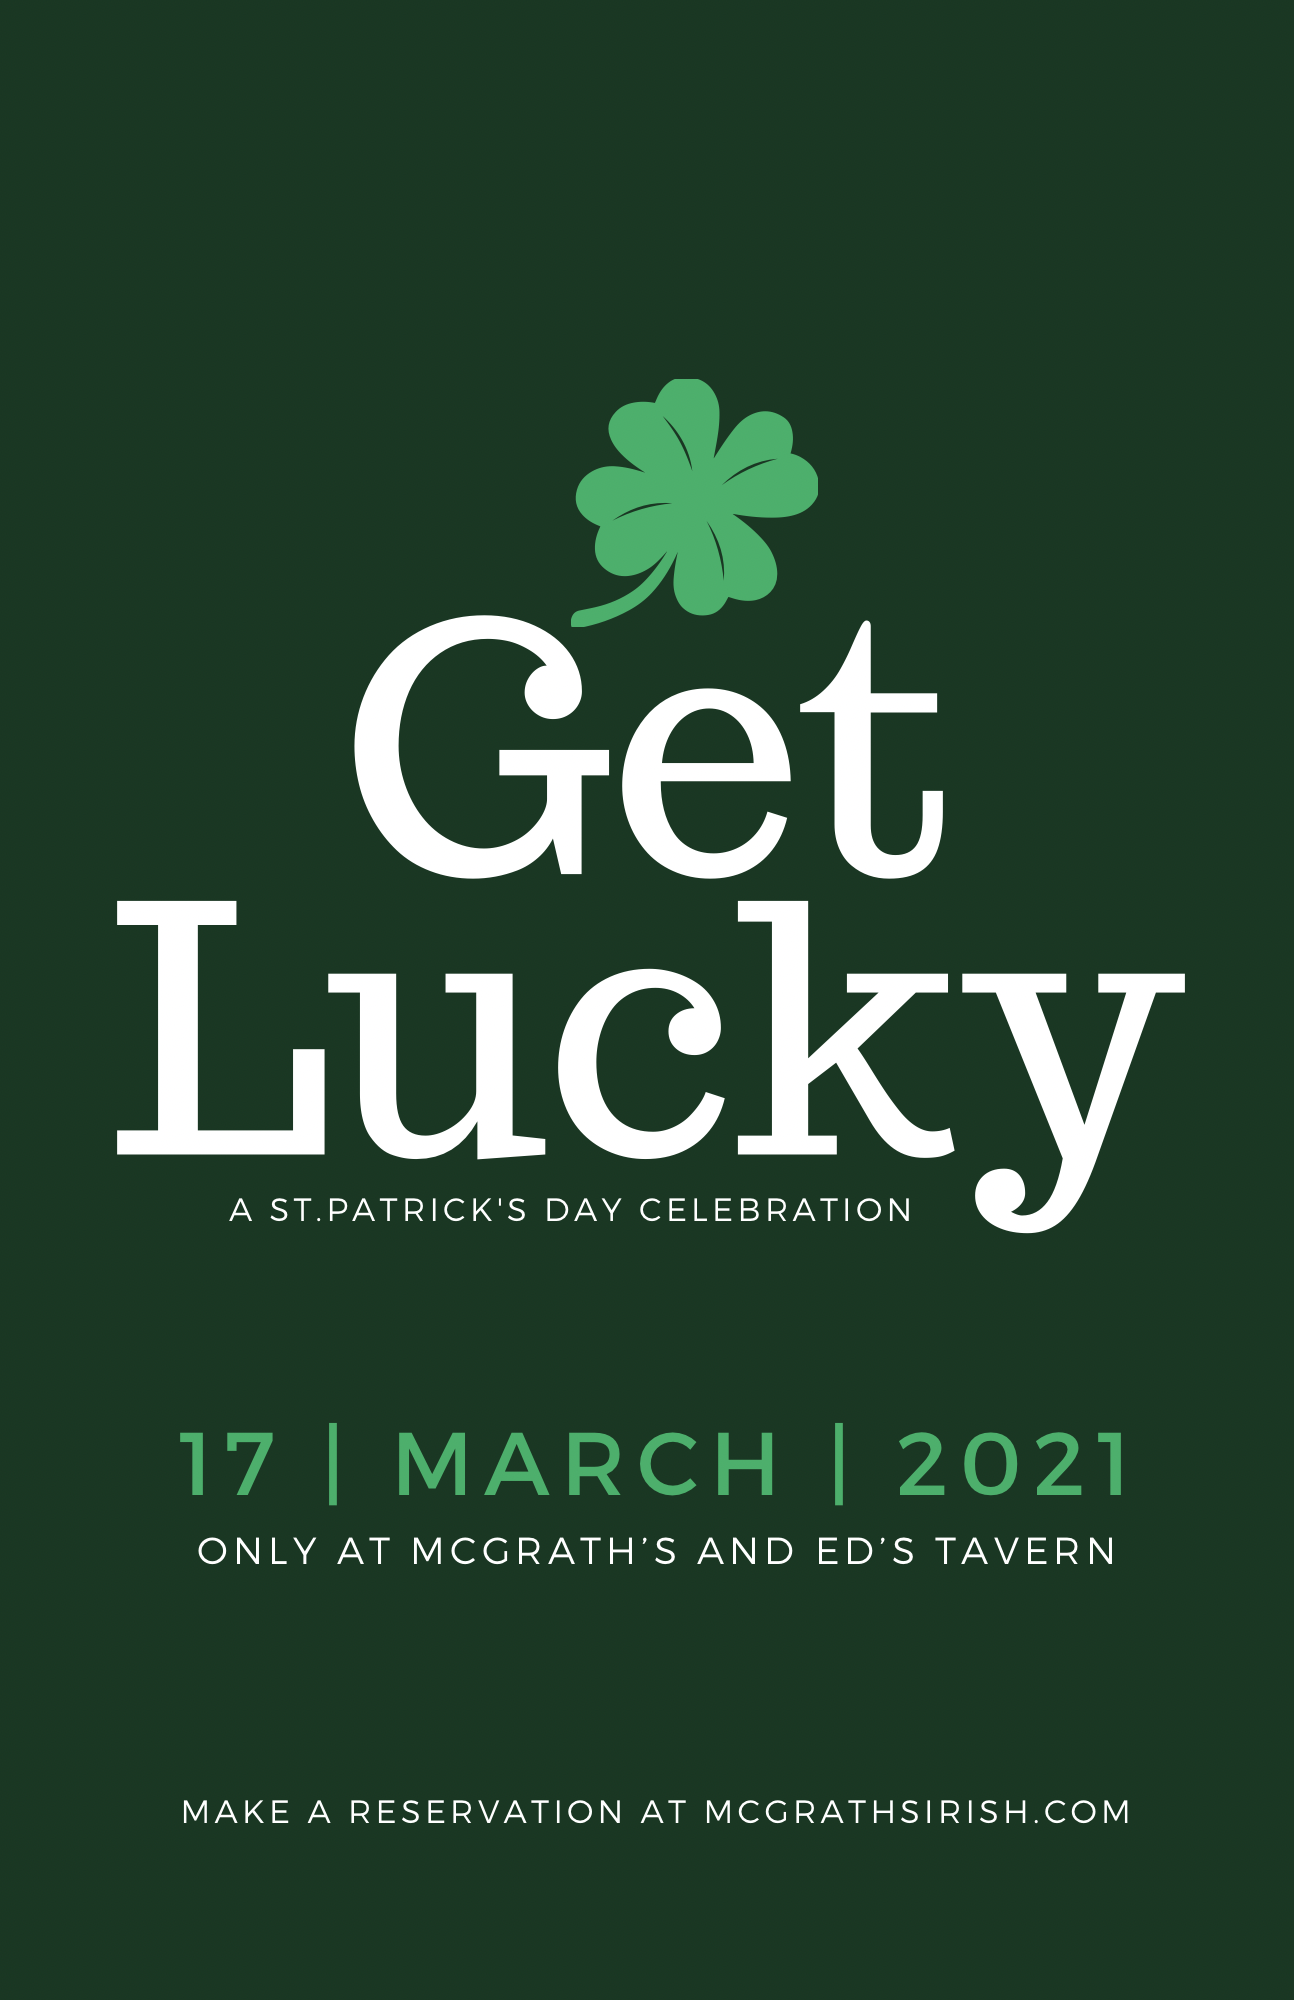 Celebrate St. Patrick's Day with Us!